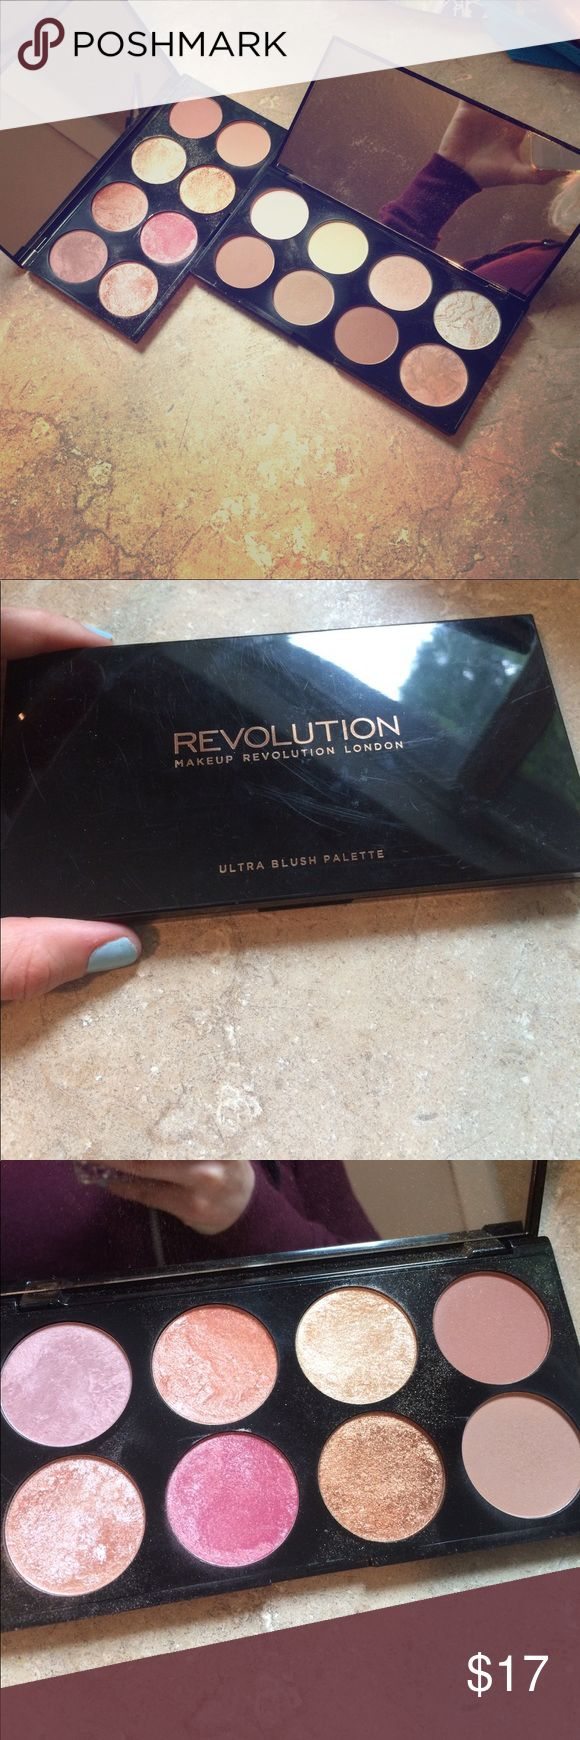 MAKEUP REVOLUTION PALETTE BUNDLE ️ Ordered from Ulta 2